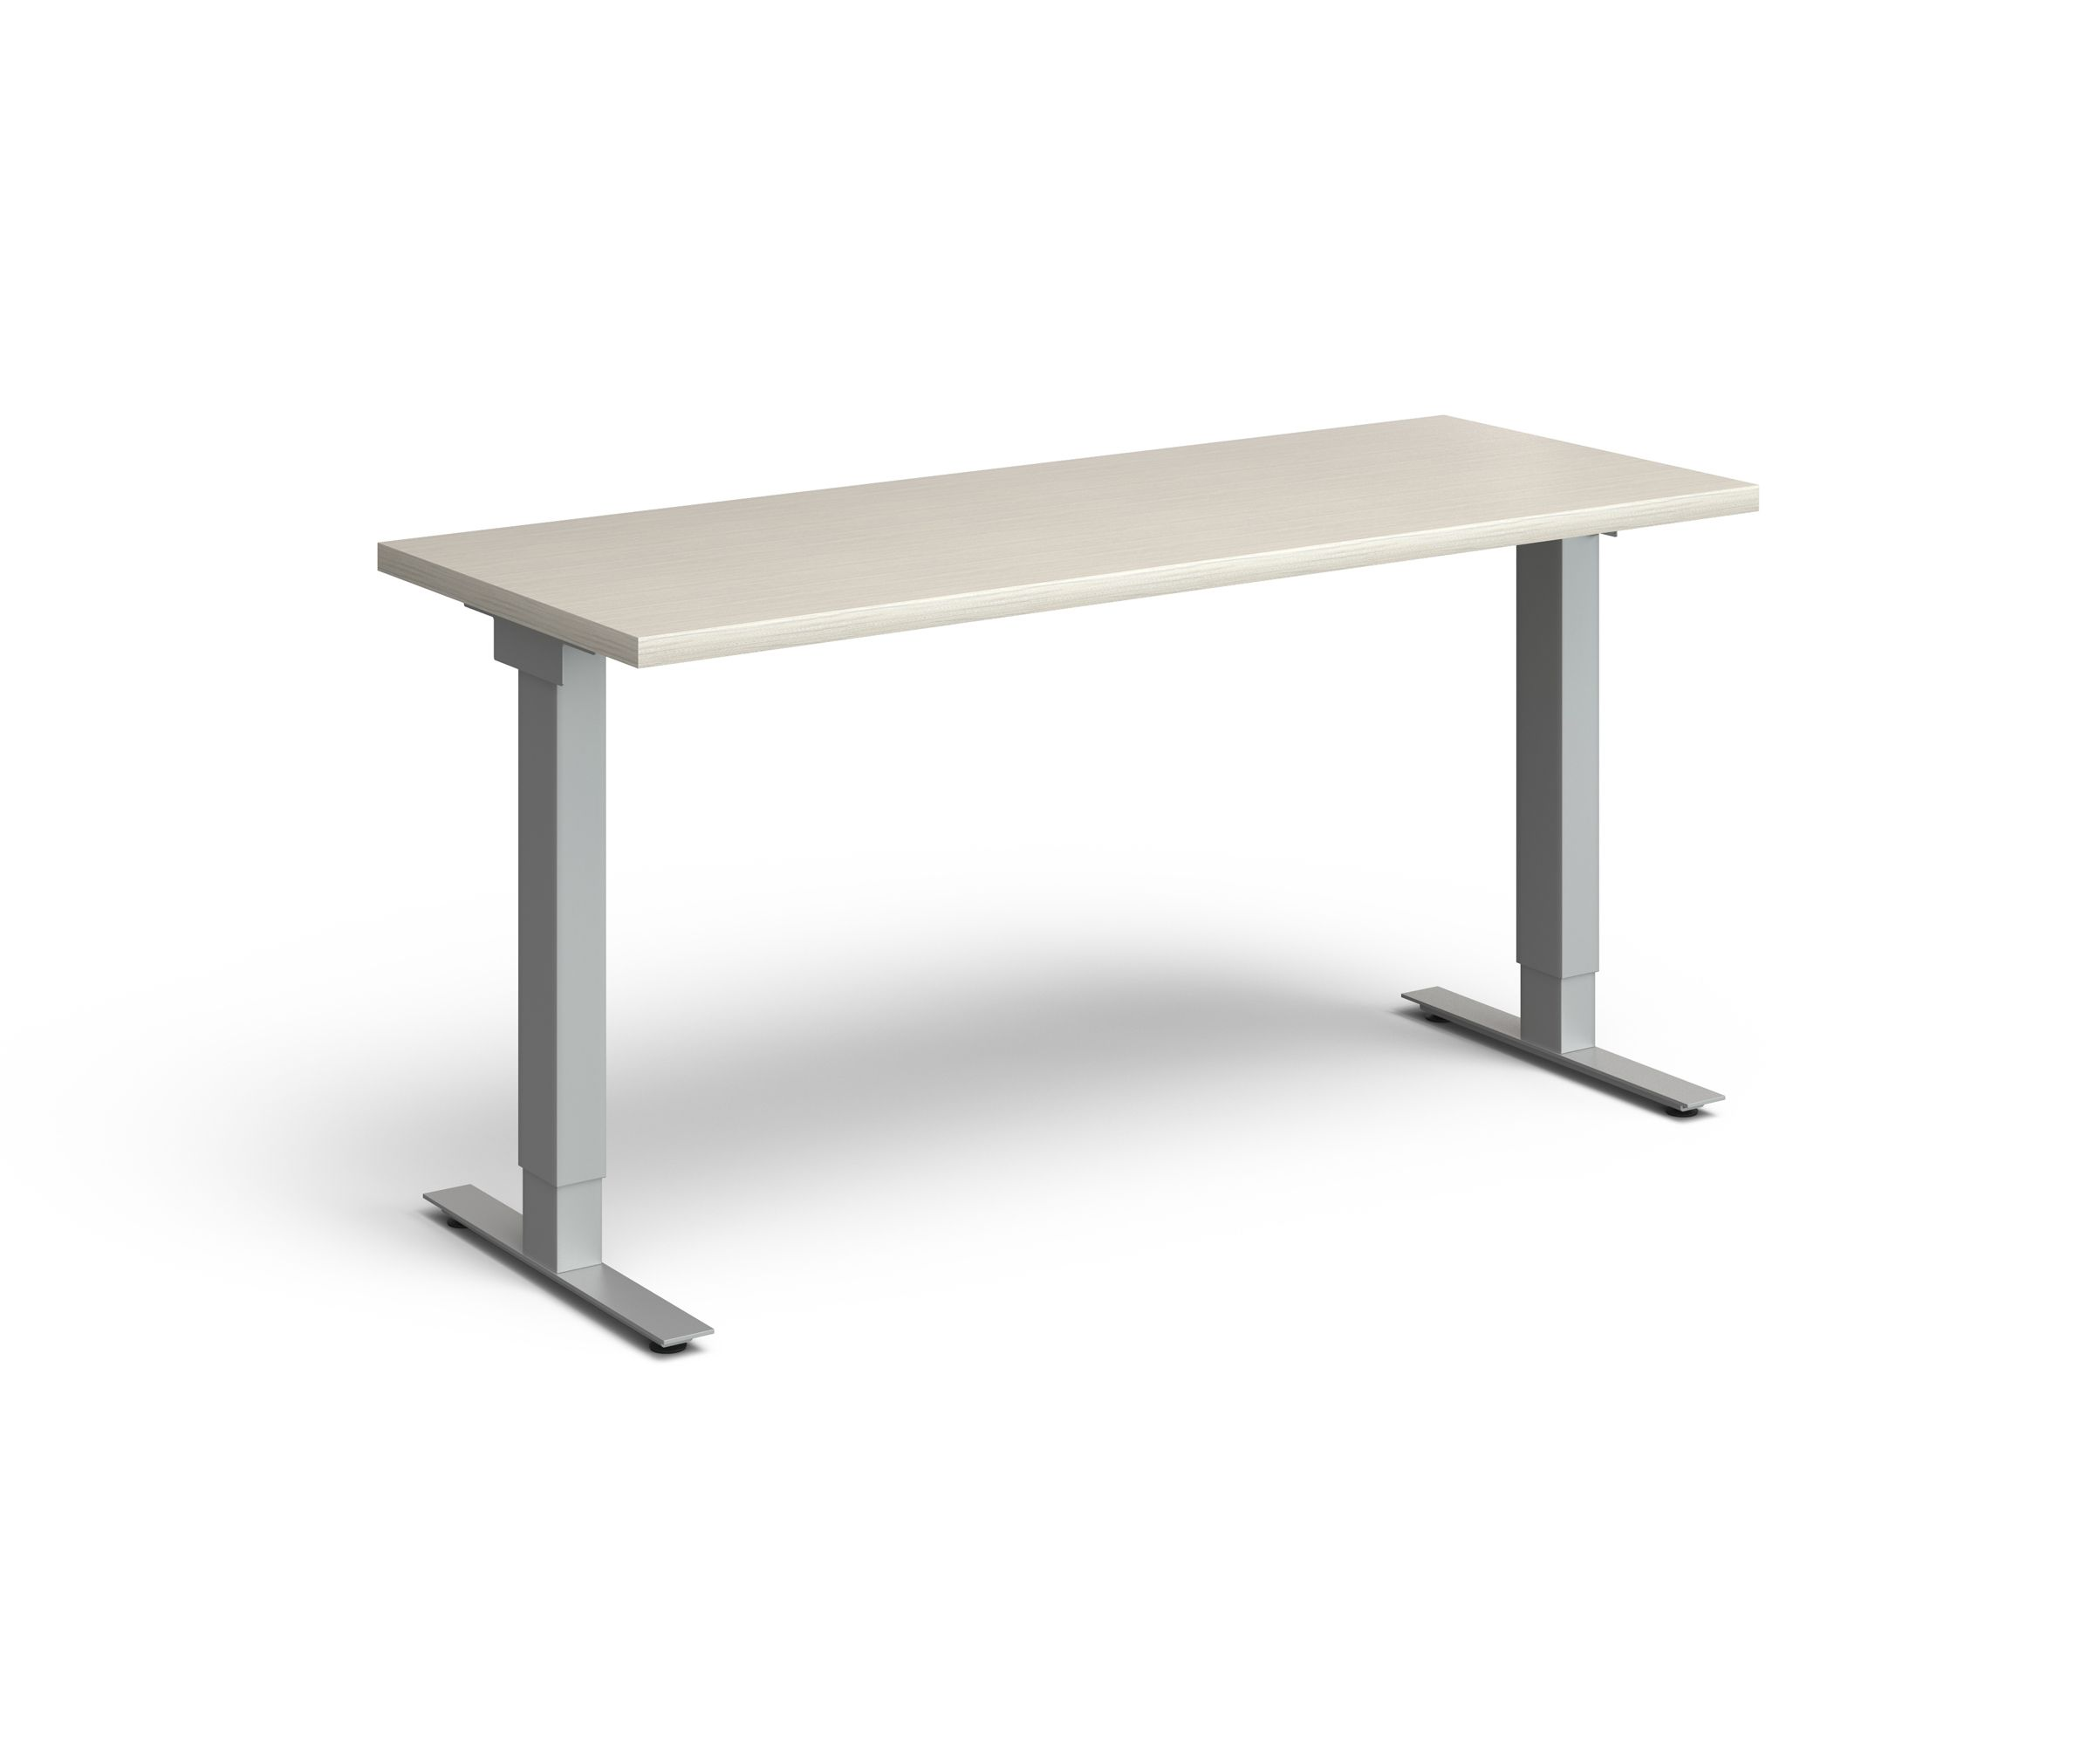 Cheap Sturdy Furniture: Captiva Electric Height-Adjustable Table: Sturdy